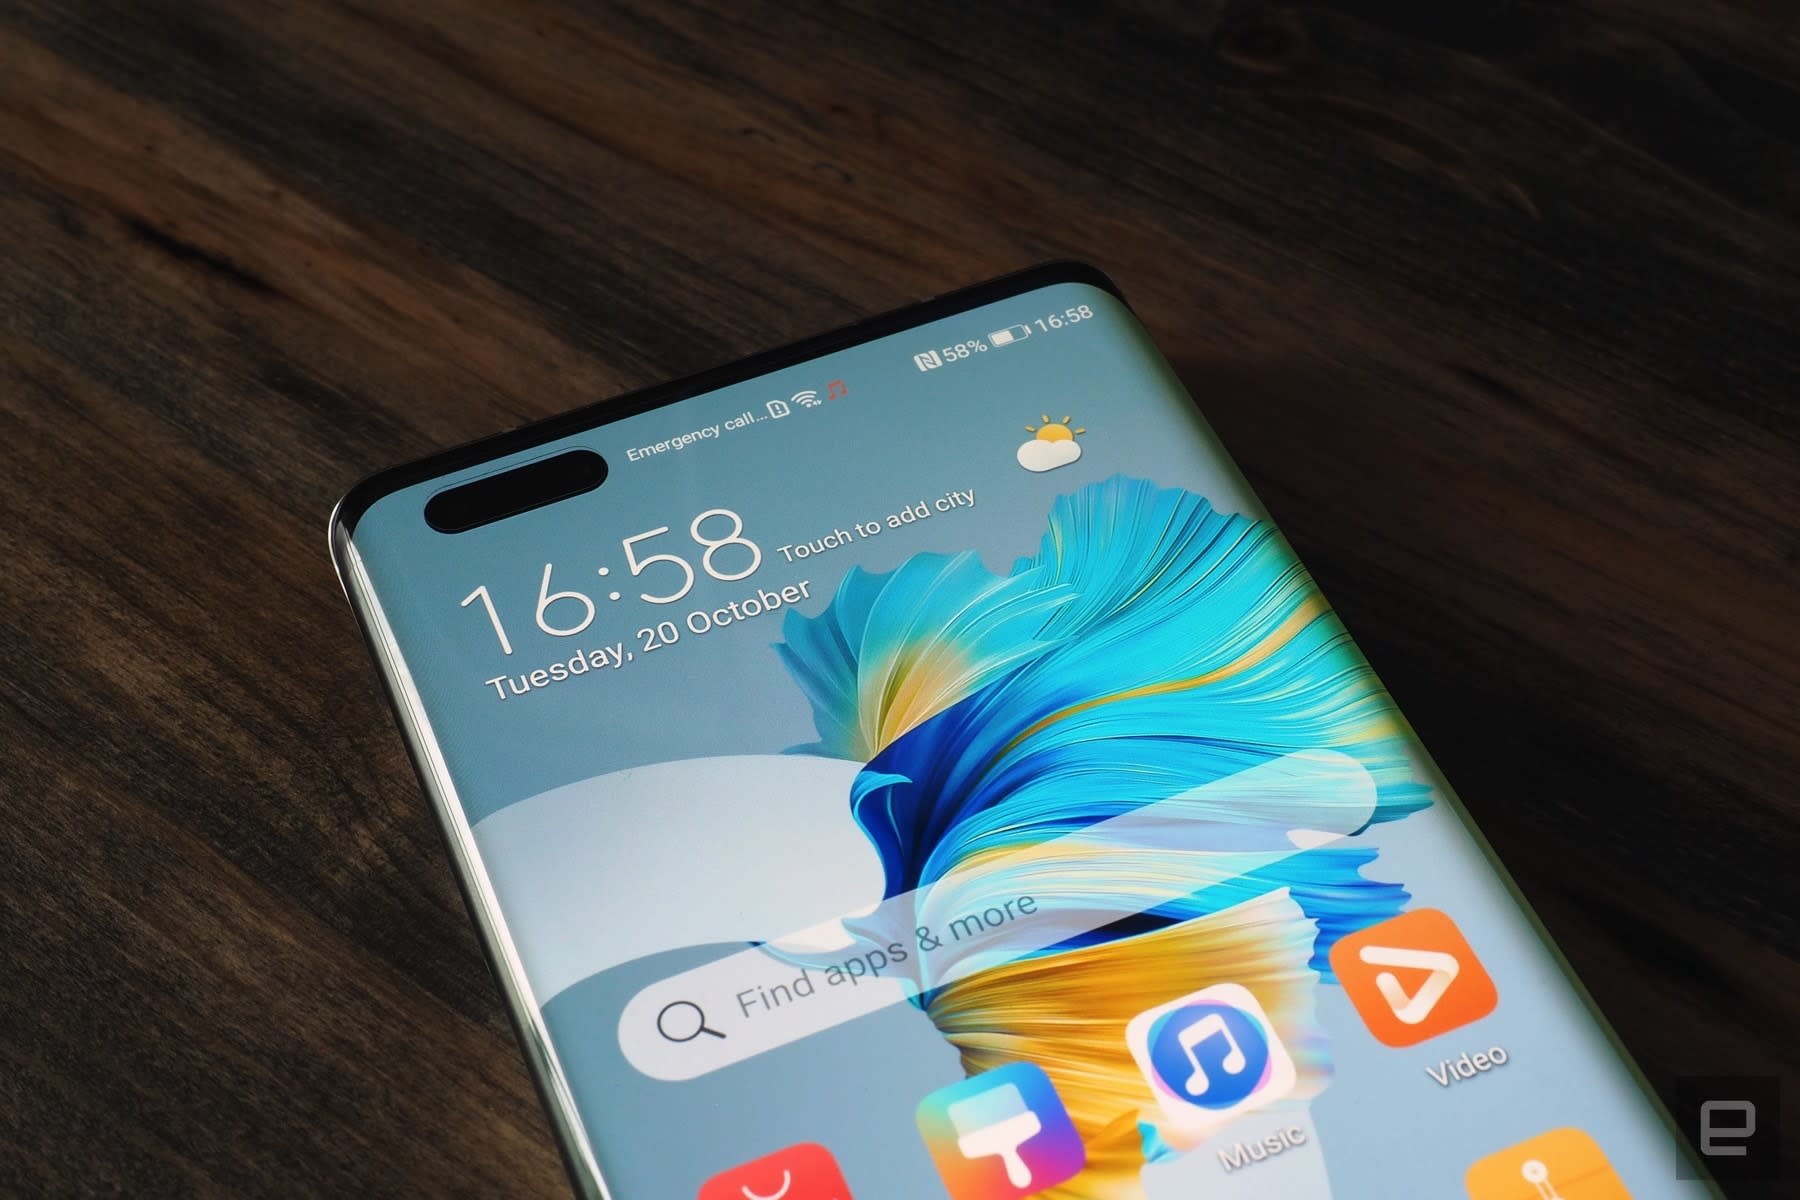 Huawei's smartphone struggles are hitting it hard in China